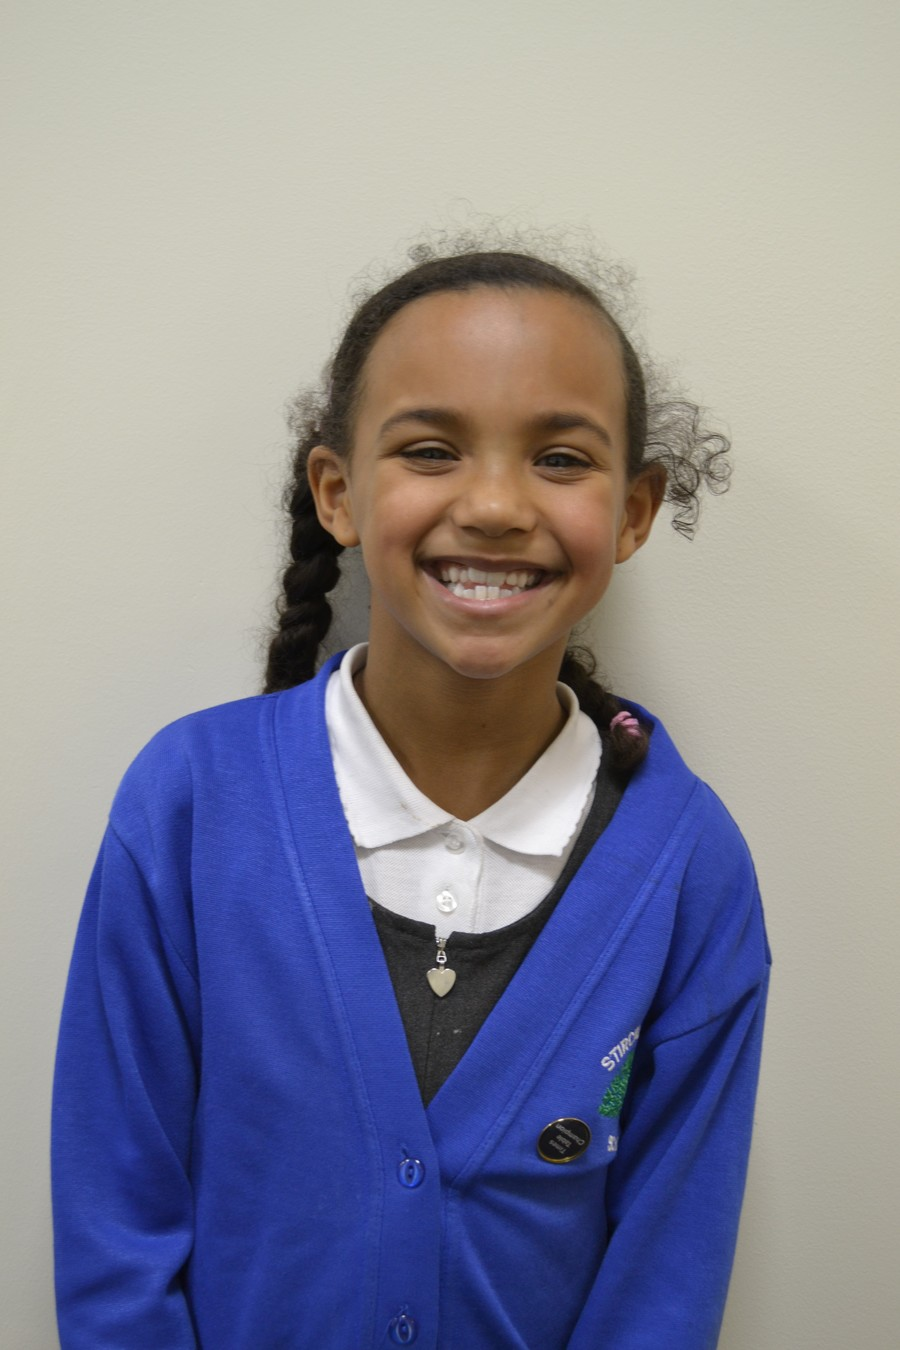 Well done Temia!